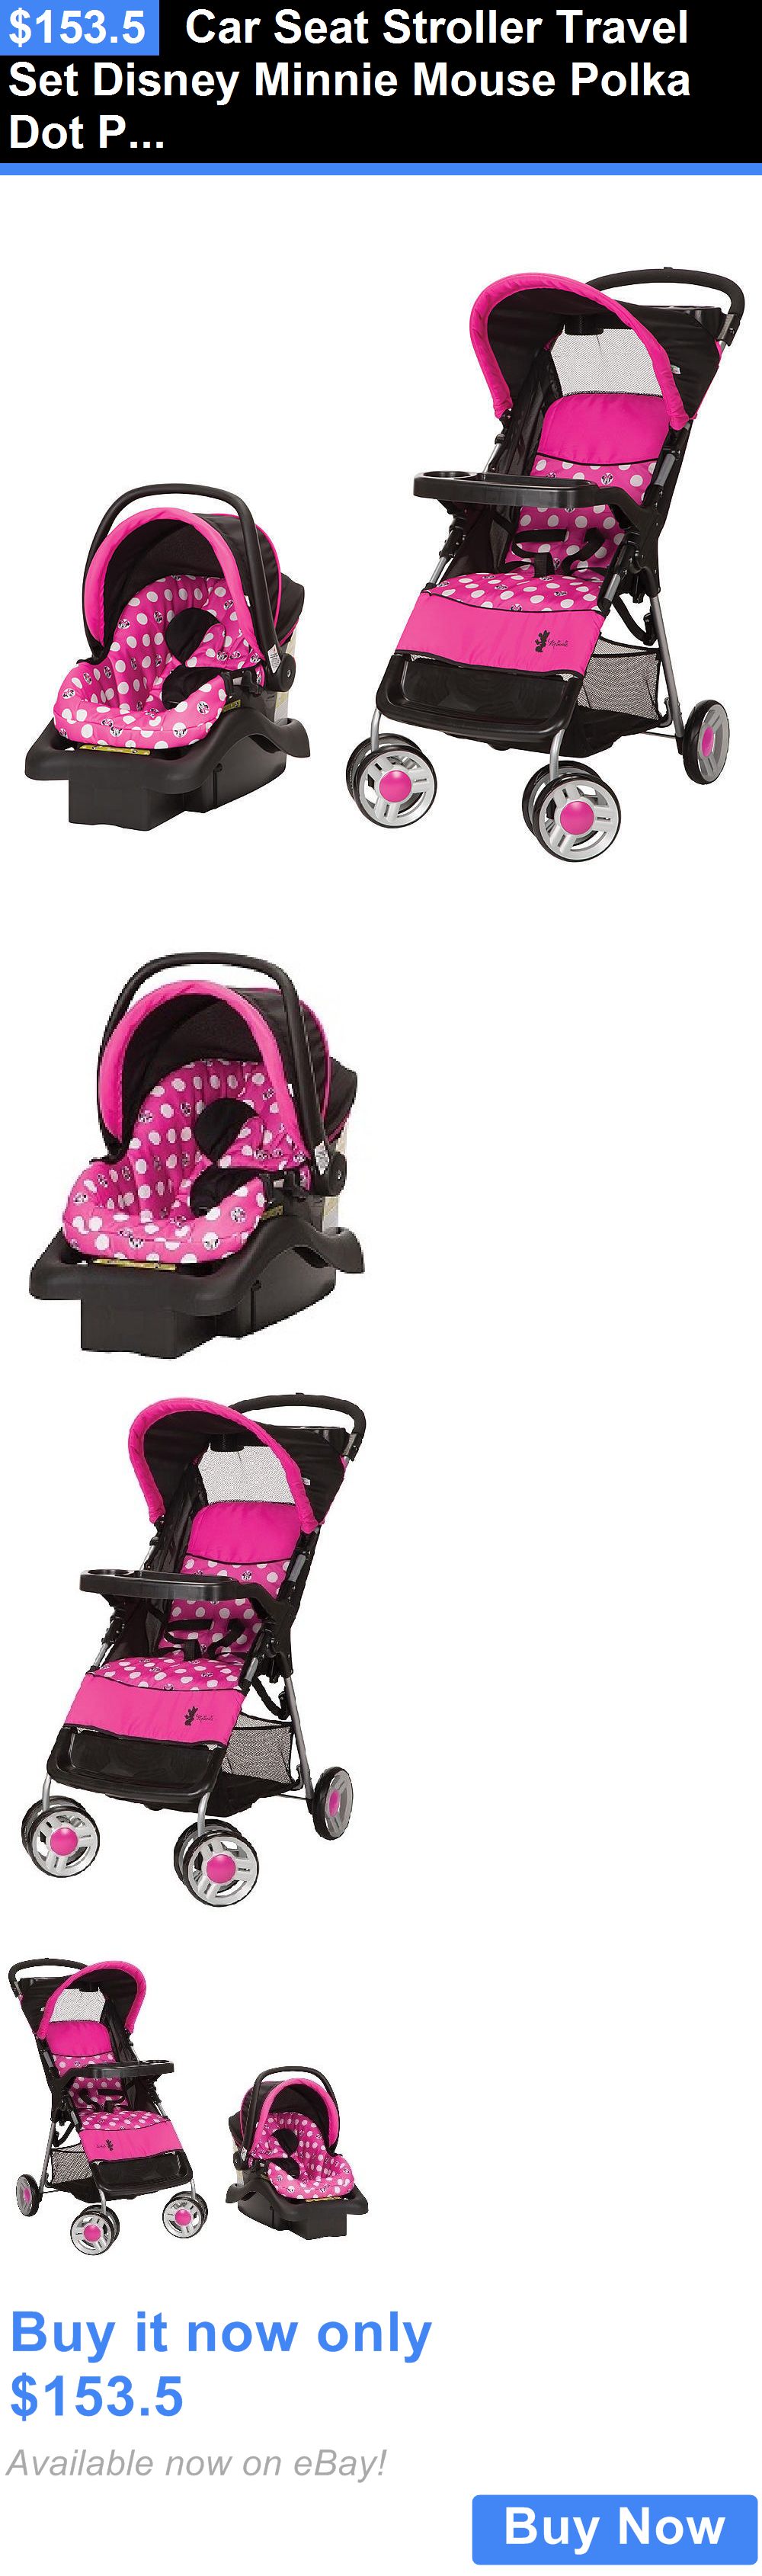 baby kid stuff Car Seat Stroller Travel Set Disney Minnie